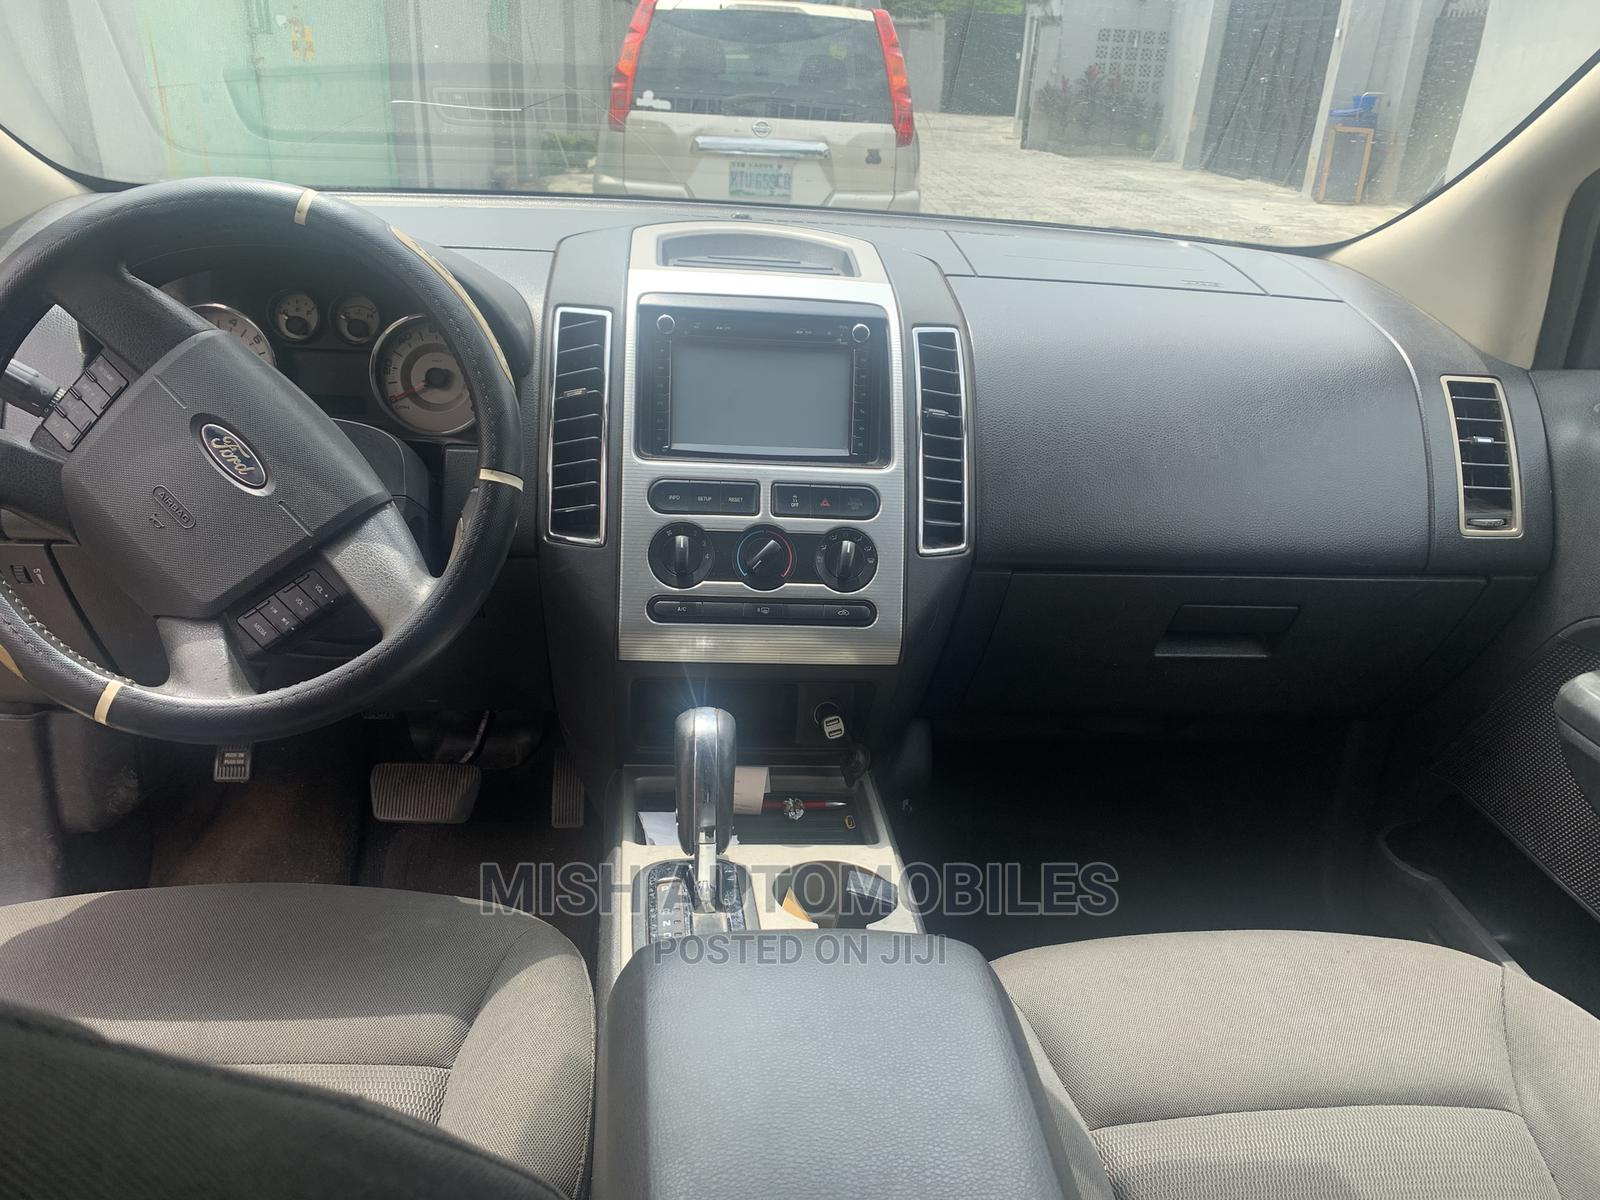 Archive: Ford Edge 2007 SE 4dr AWD (3.5L 6cyl 6A) Gray